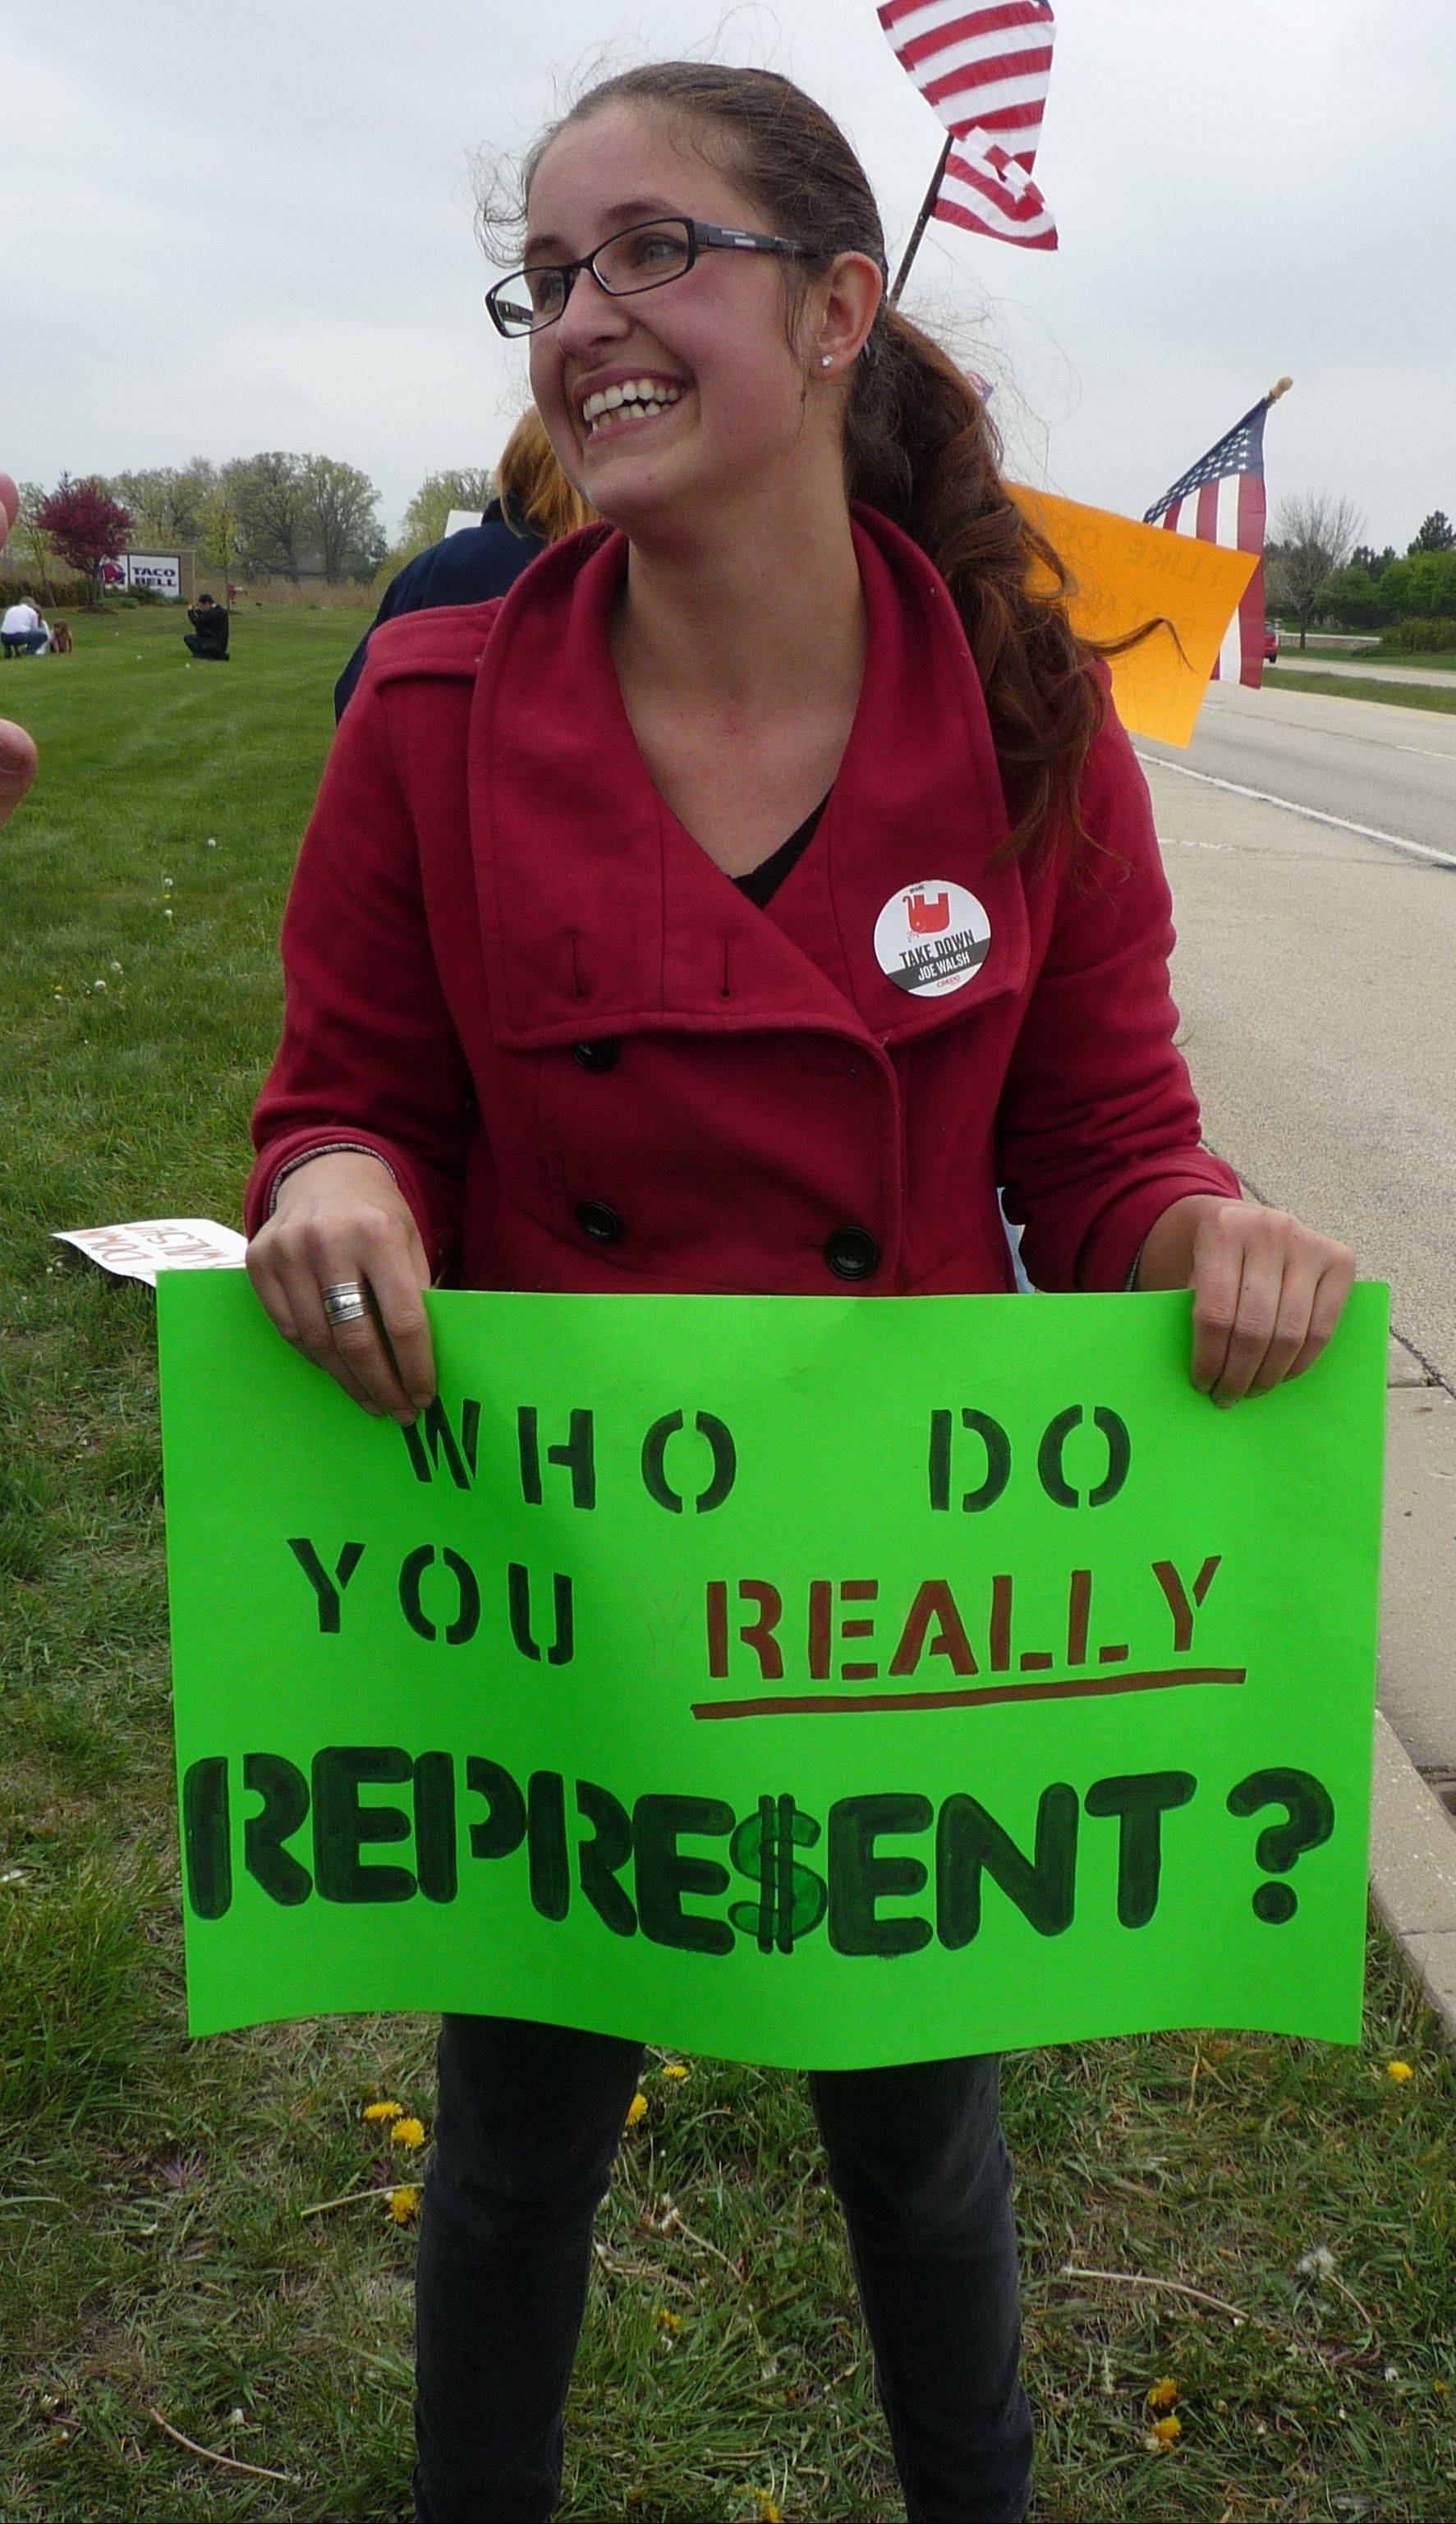 As a district director for a new political action committee out to defeat Tea Party candidates, Kyran McCann of Schaumburg protest against Congressman Joe Walsh at a Tea Party rally Saturday in Huntley.